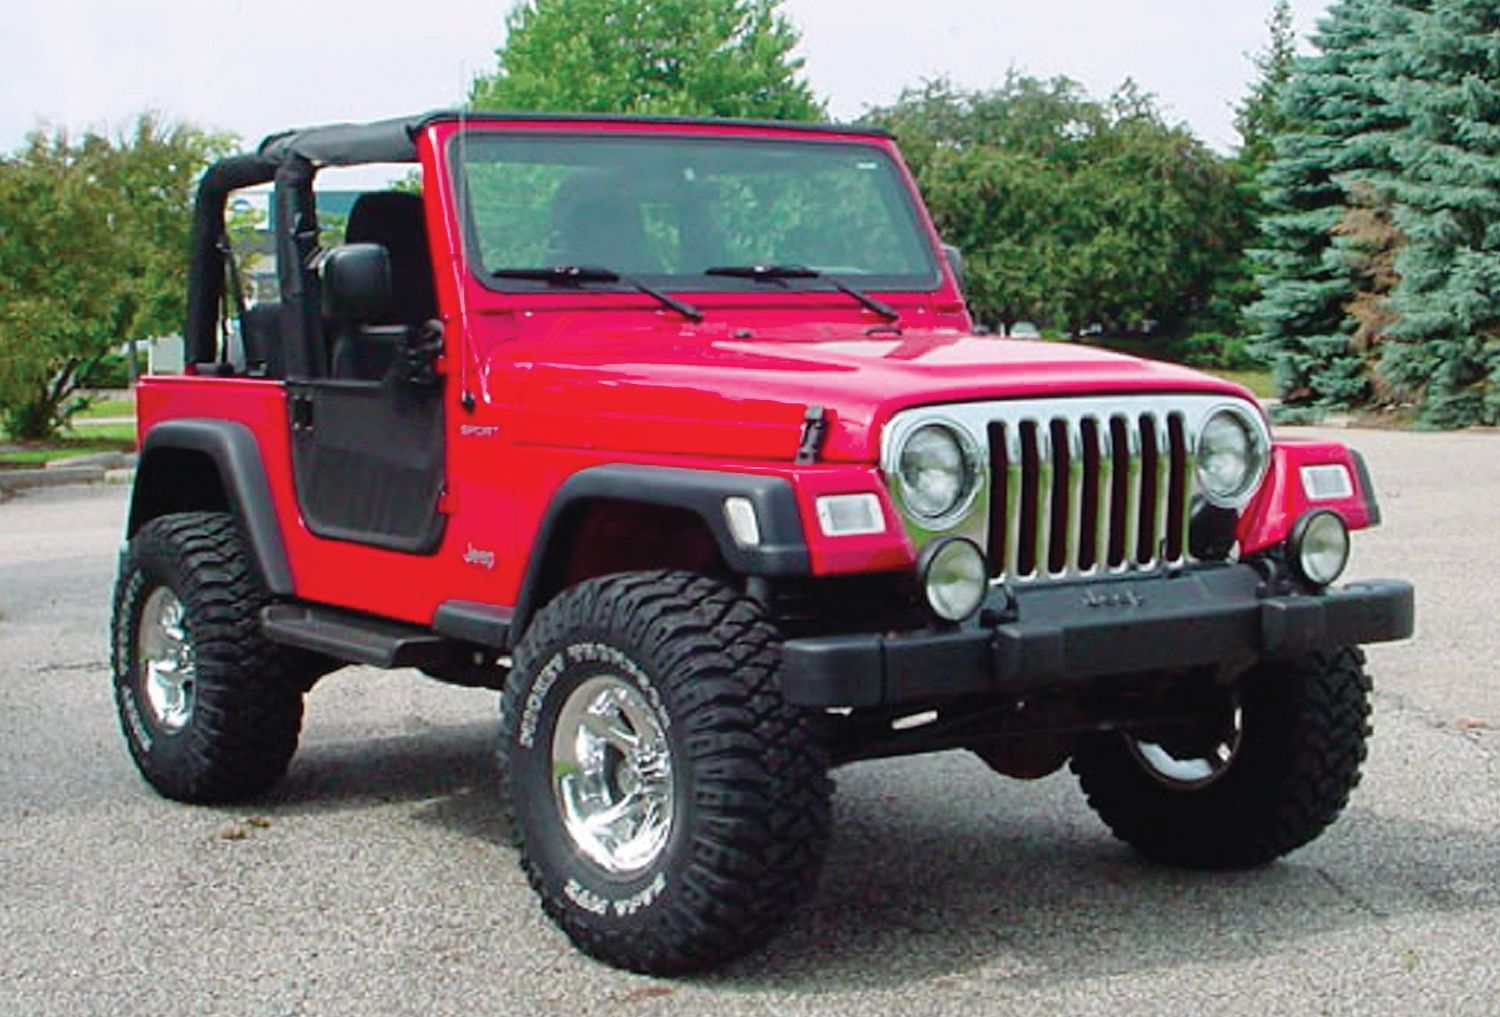 Buying Used Jeep Wrangler Tj 4x4 Magazine Jeep Wrangler Tj